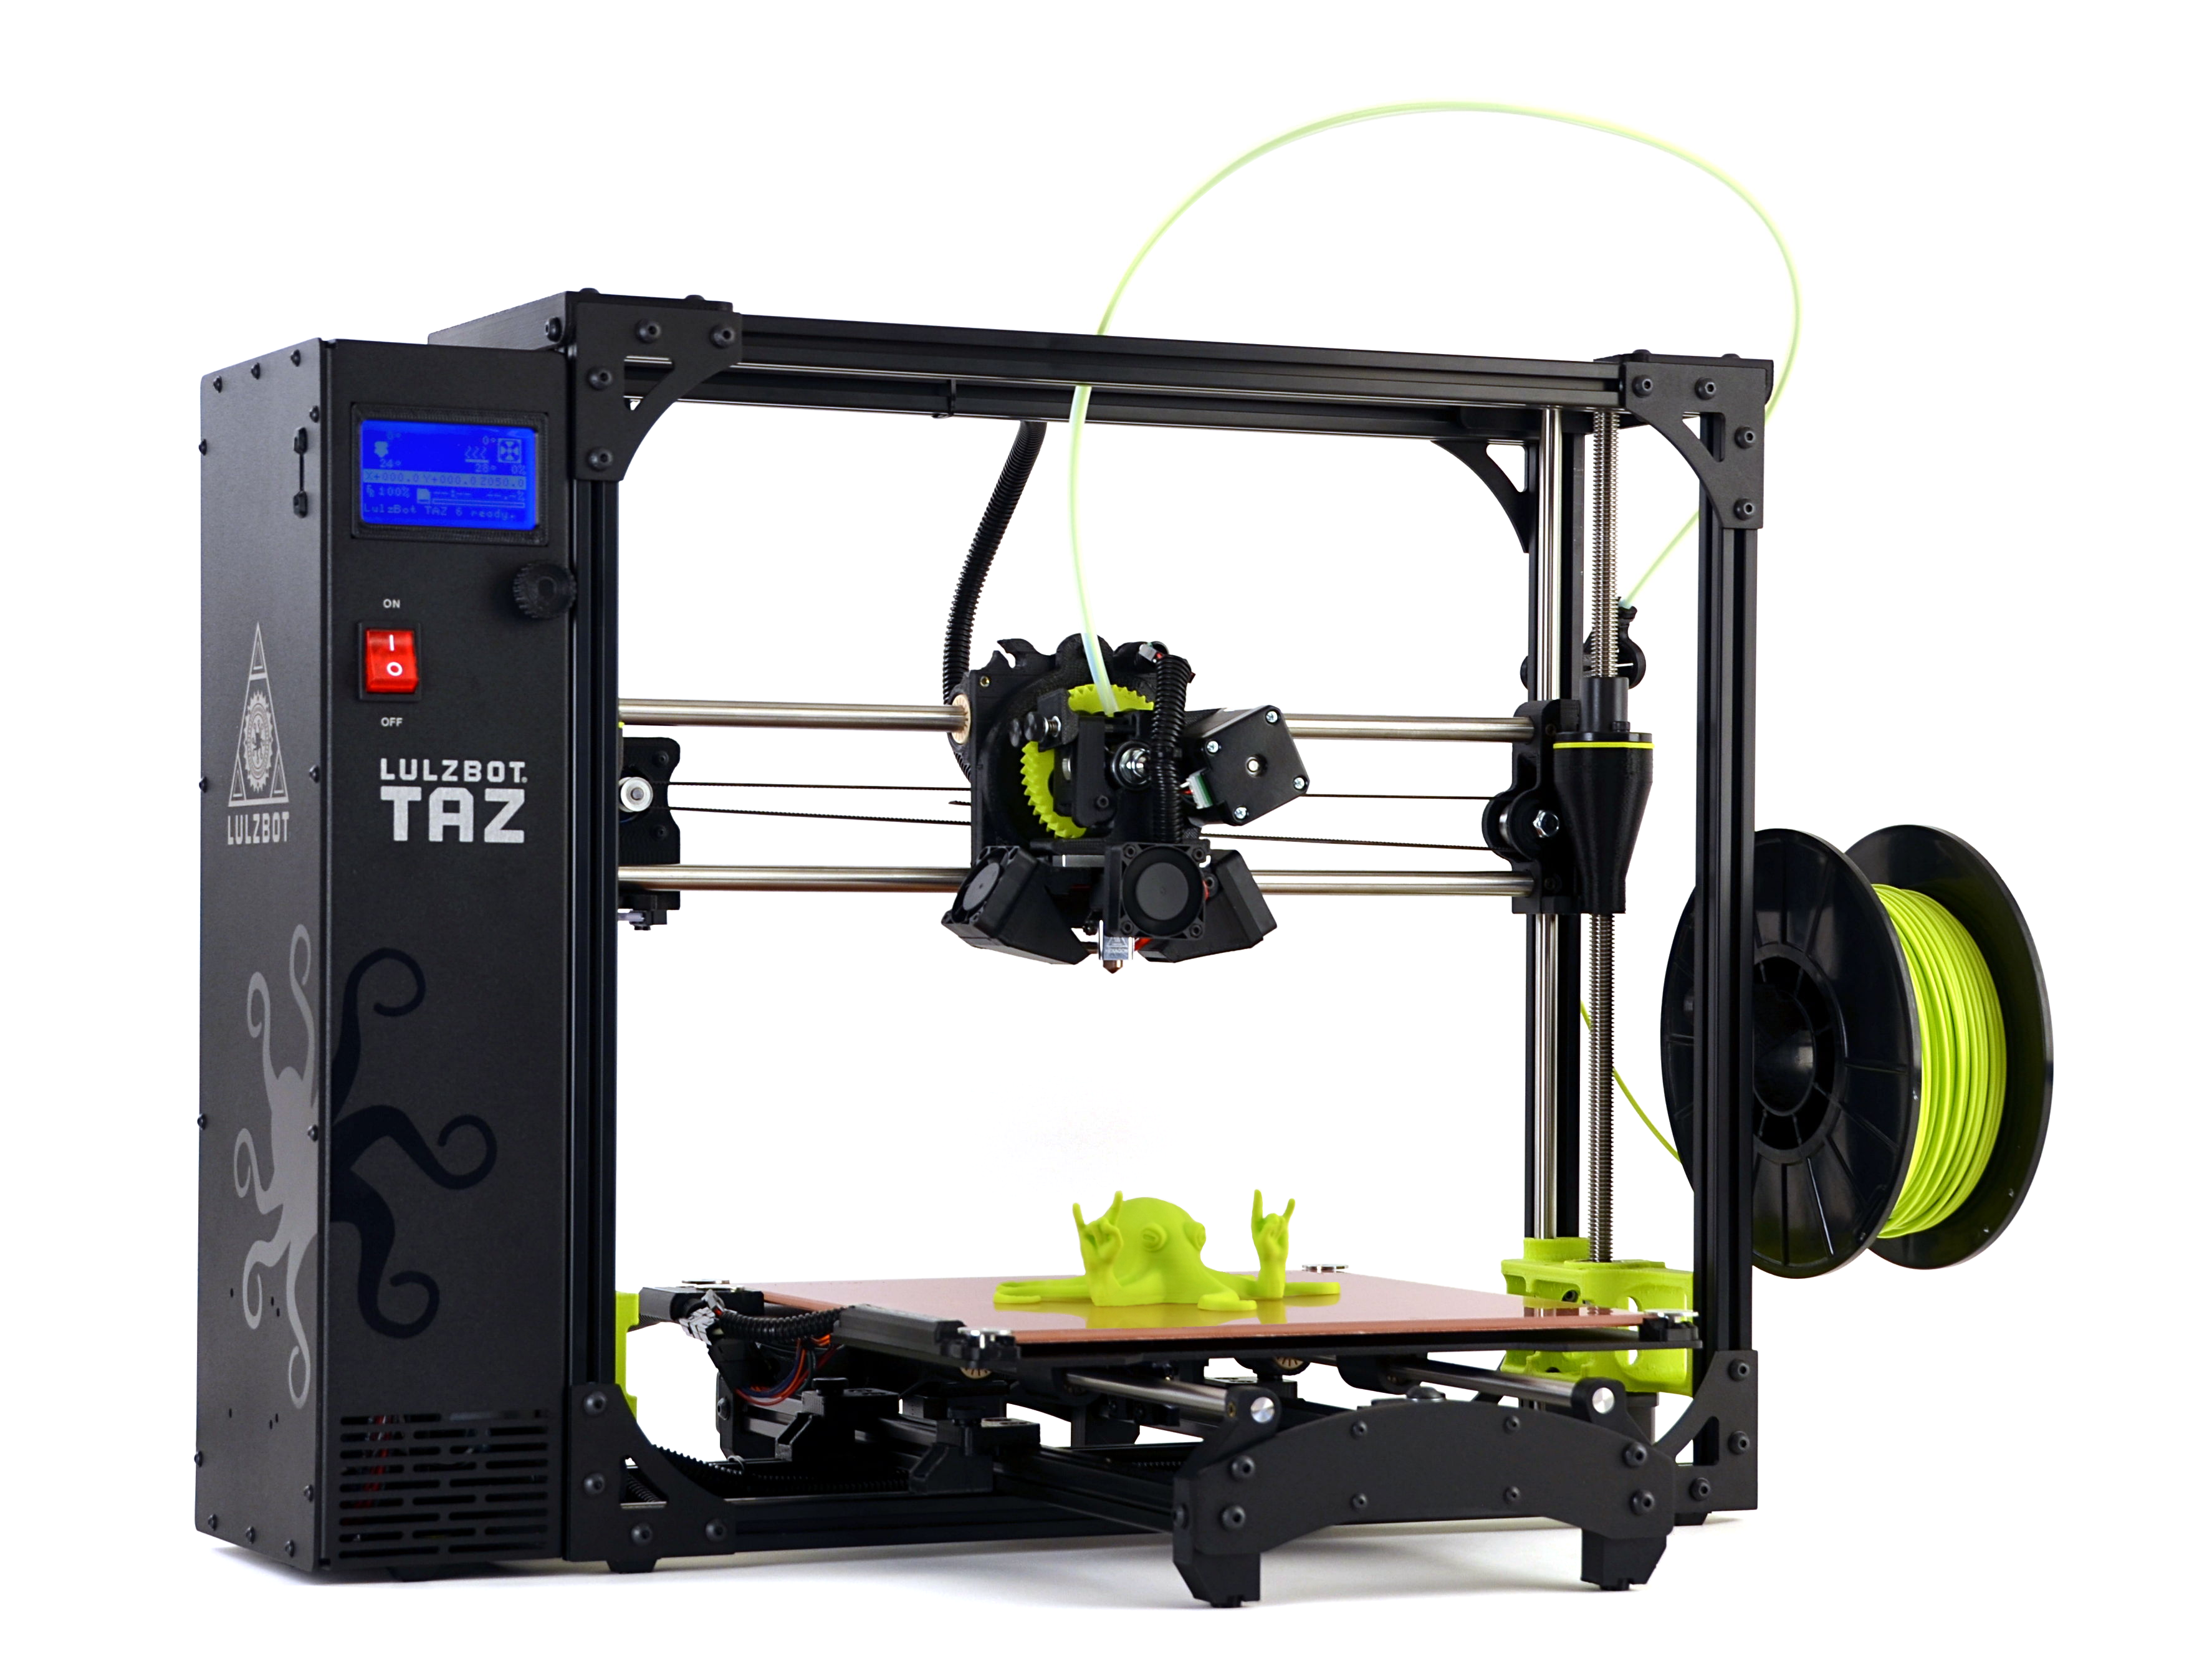 Network 3d printer with windows 10 iot core windows iot for 3d setup builder